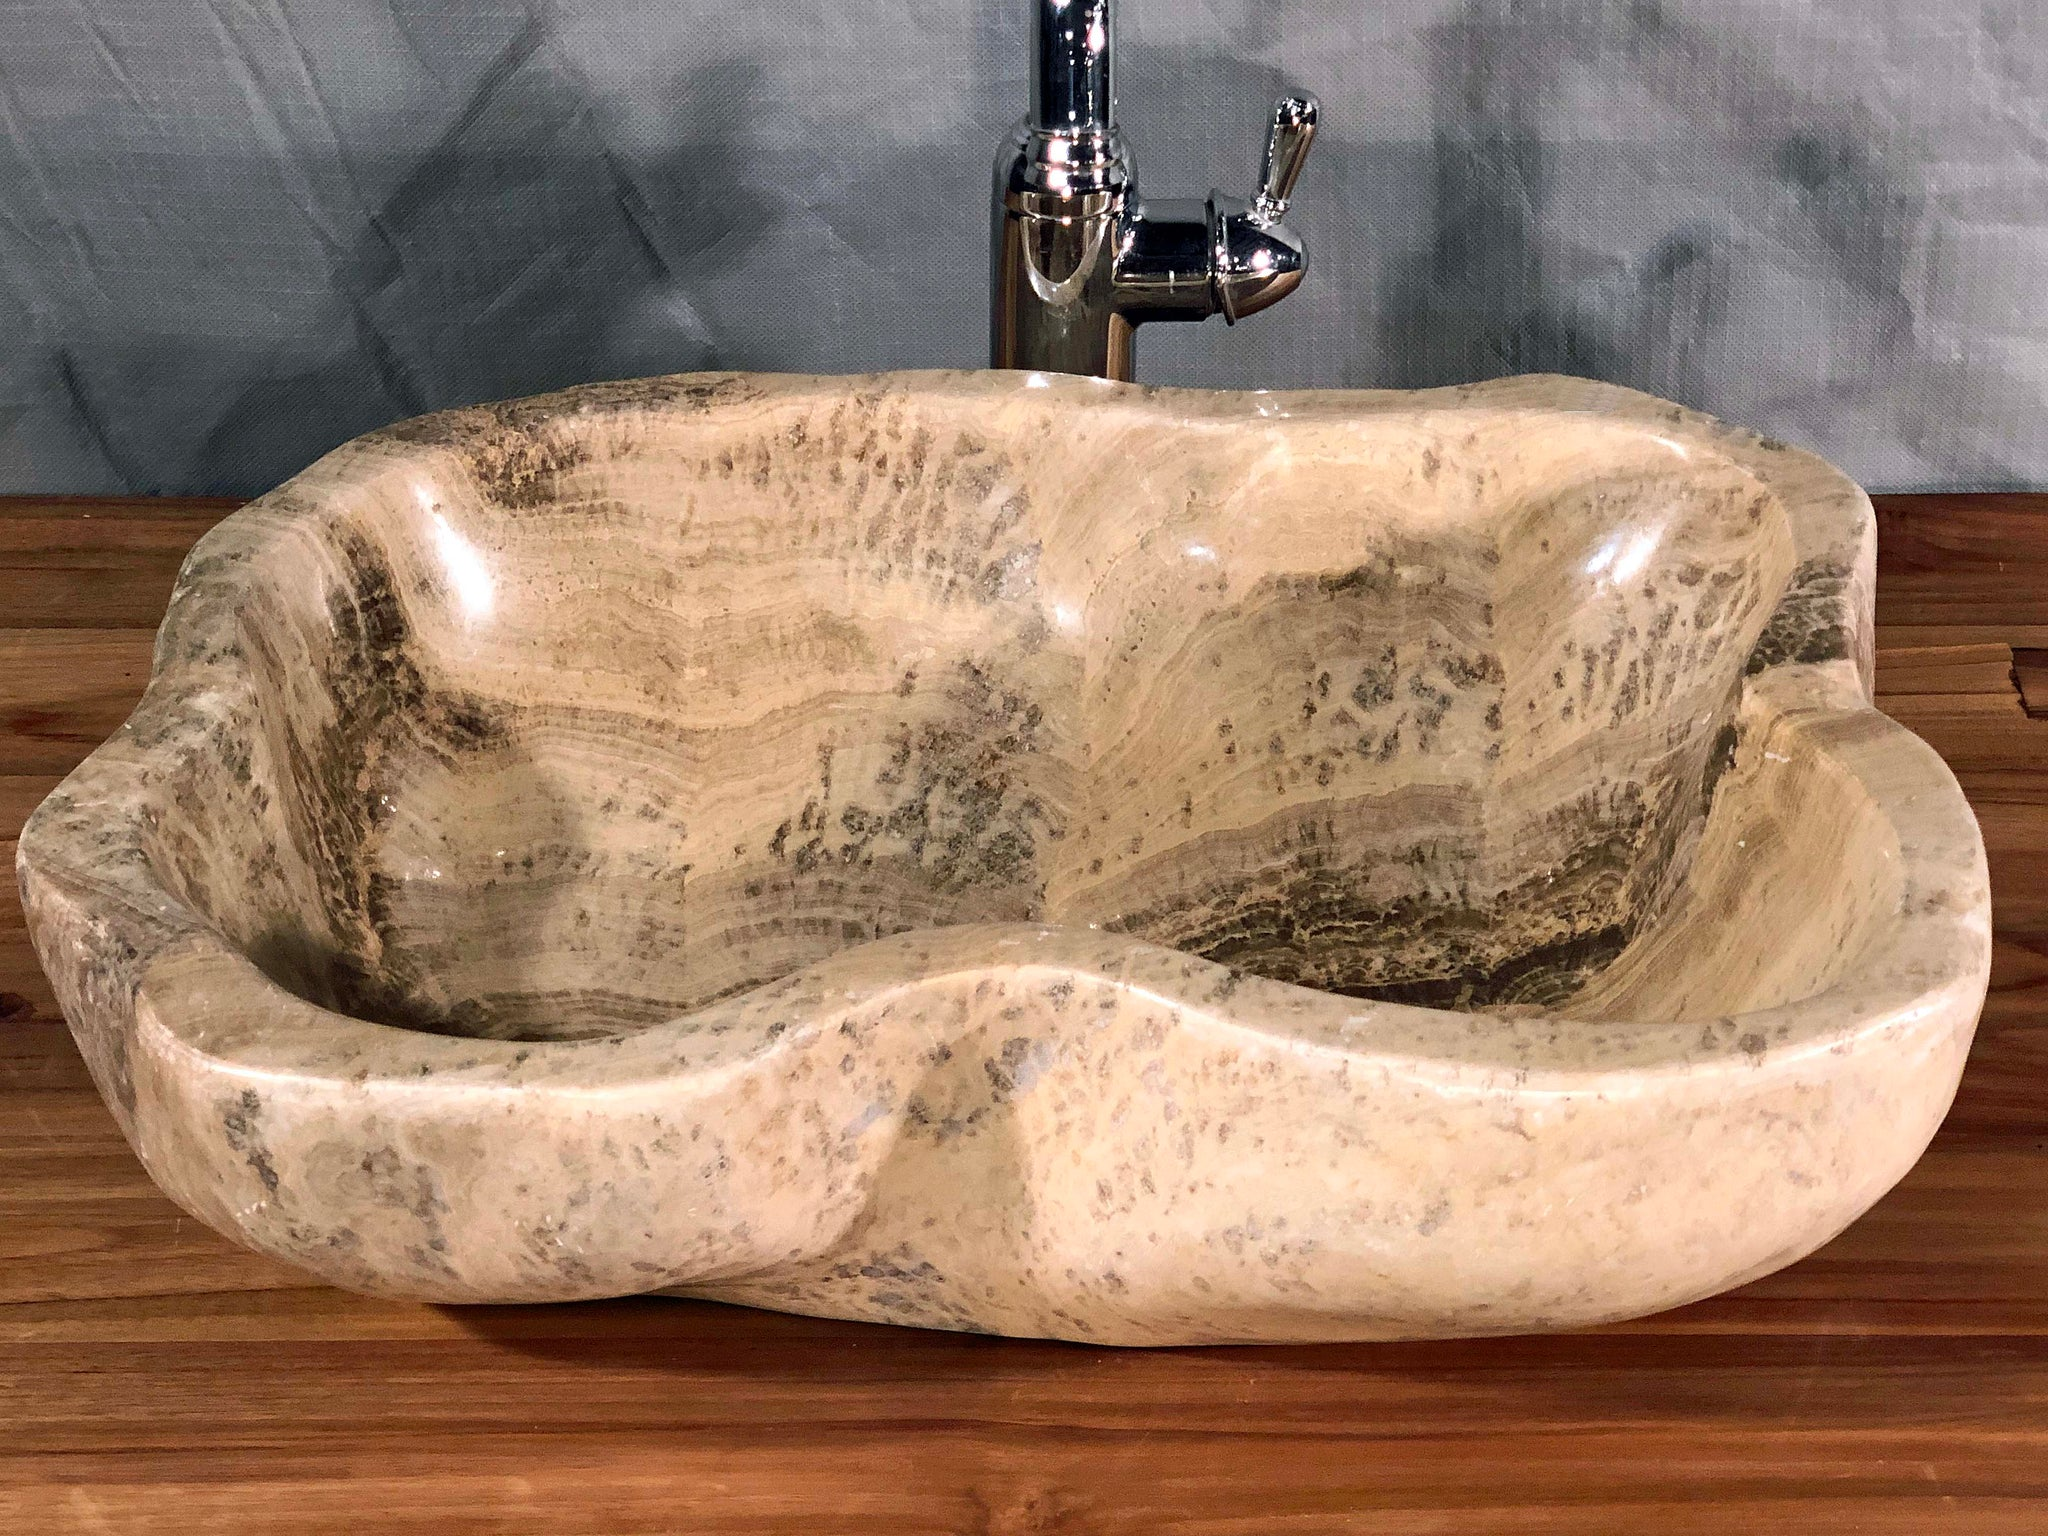 A large mixed marble and onyx vessel sink hand made from a single piece of brown and cream colored stone available at Impact Imports in Boise Idaho.